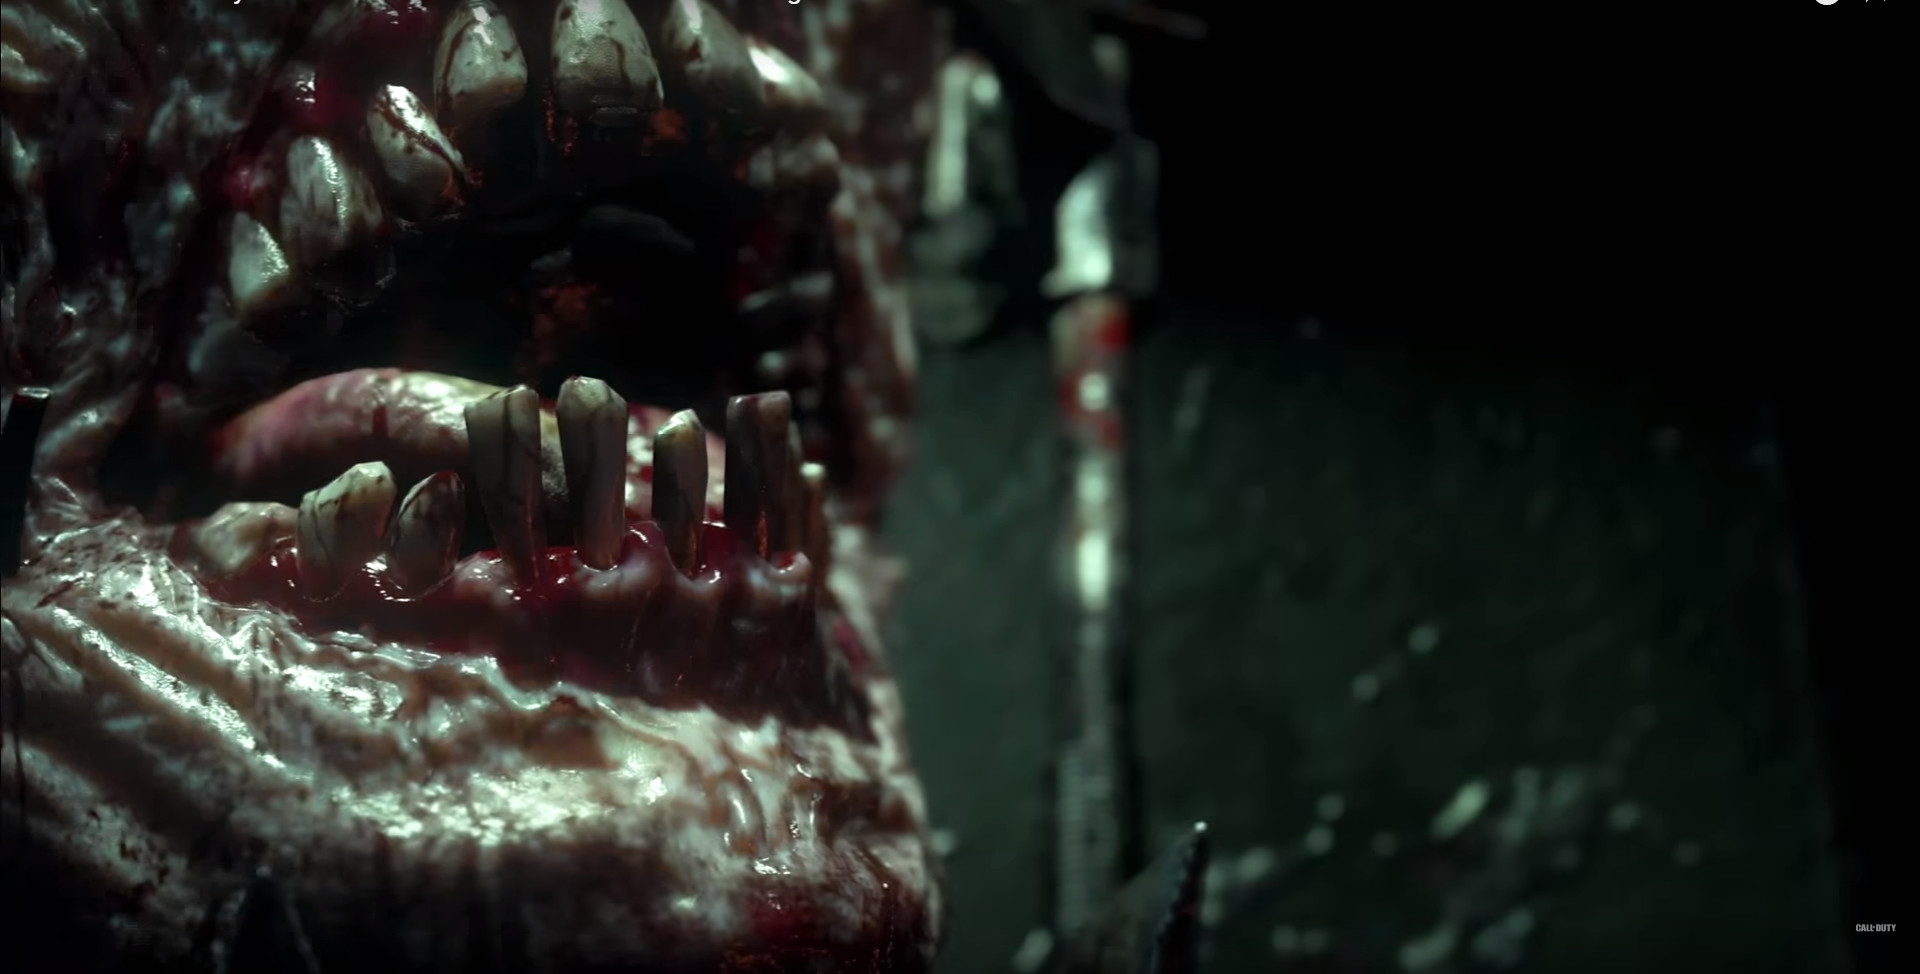 Call Of Duty Ww2 Zombies Wallpaper: Call Of Duty WWII Nazi Zombies